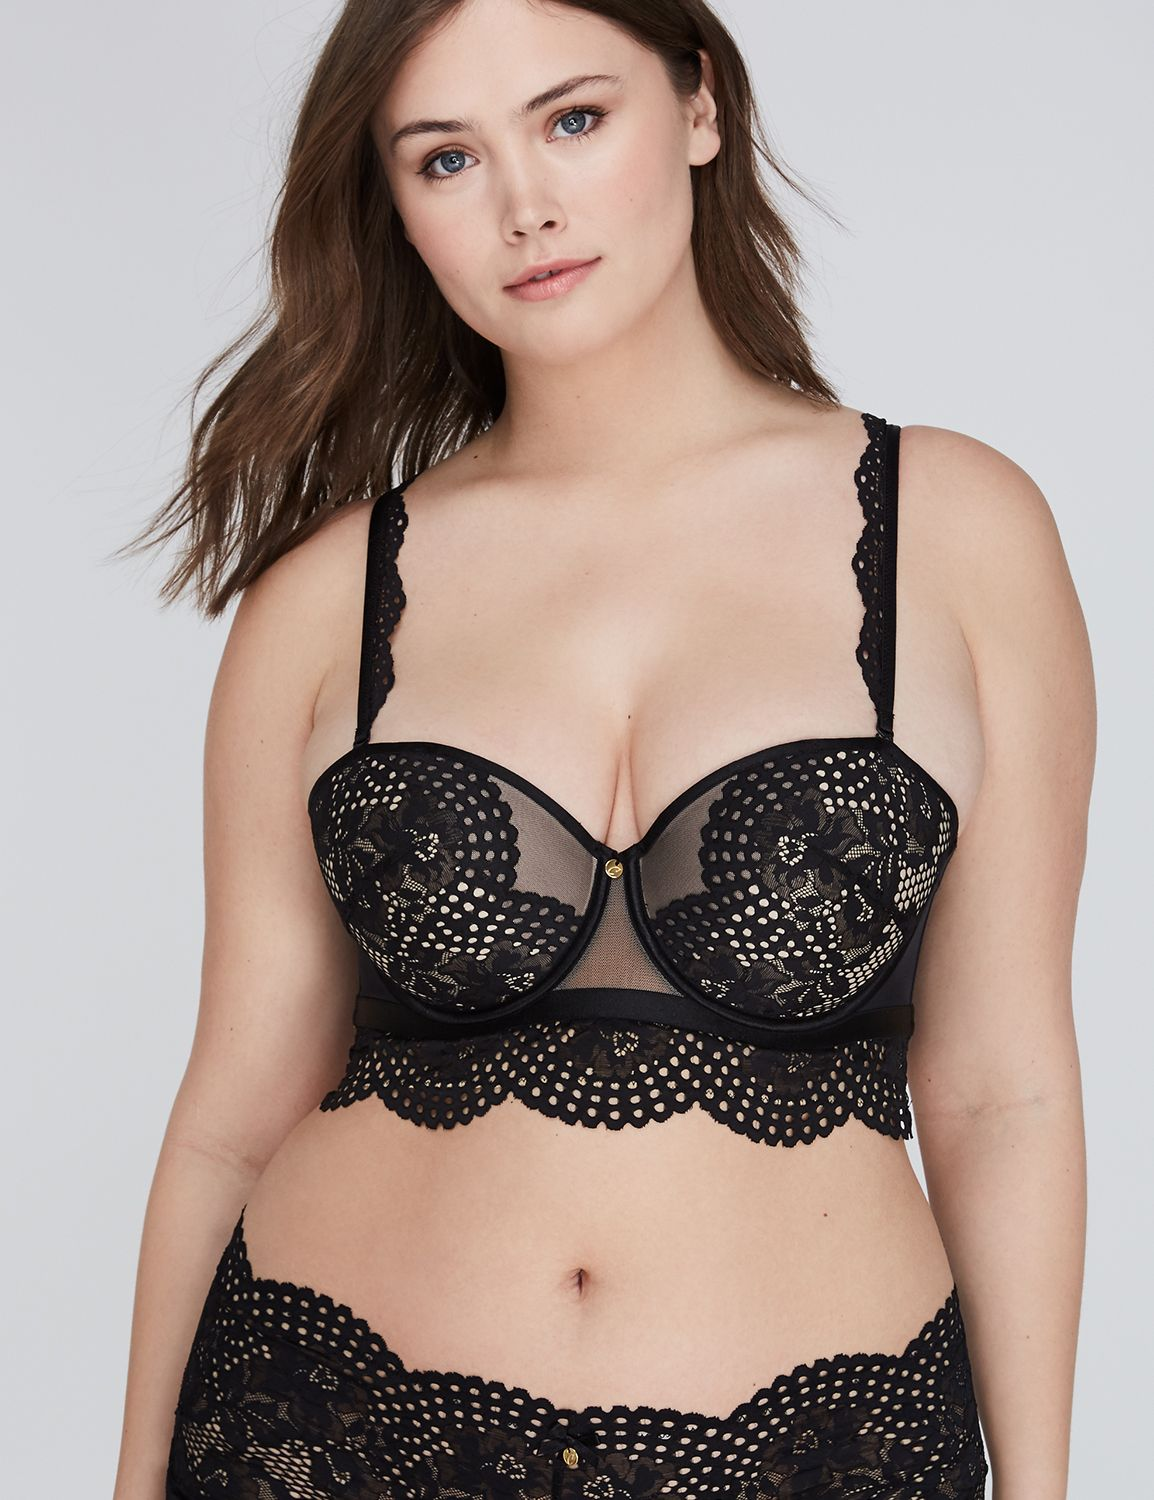 cacique strapless and multi way plus size bras | plus size bras